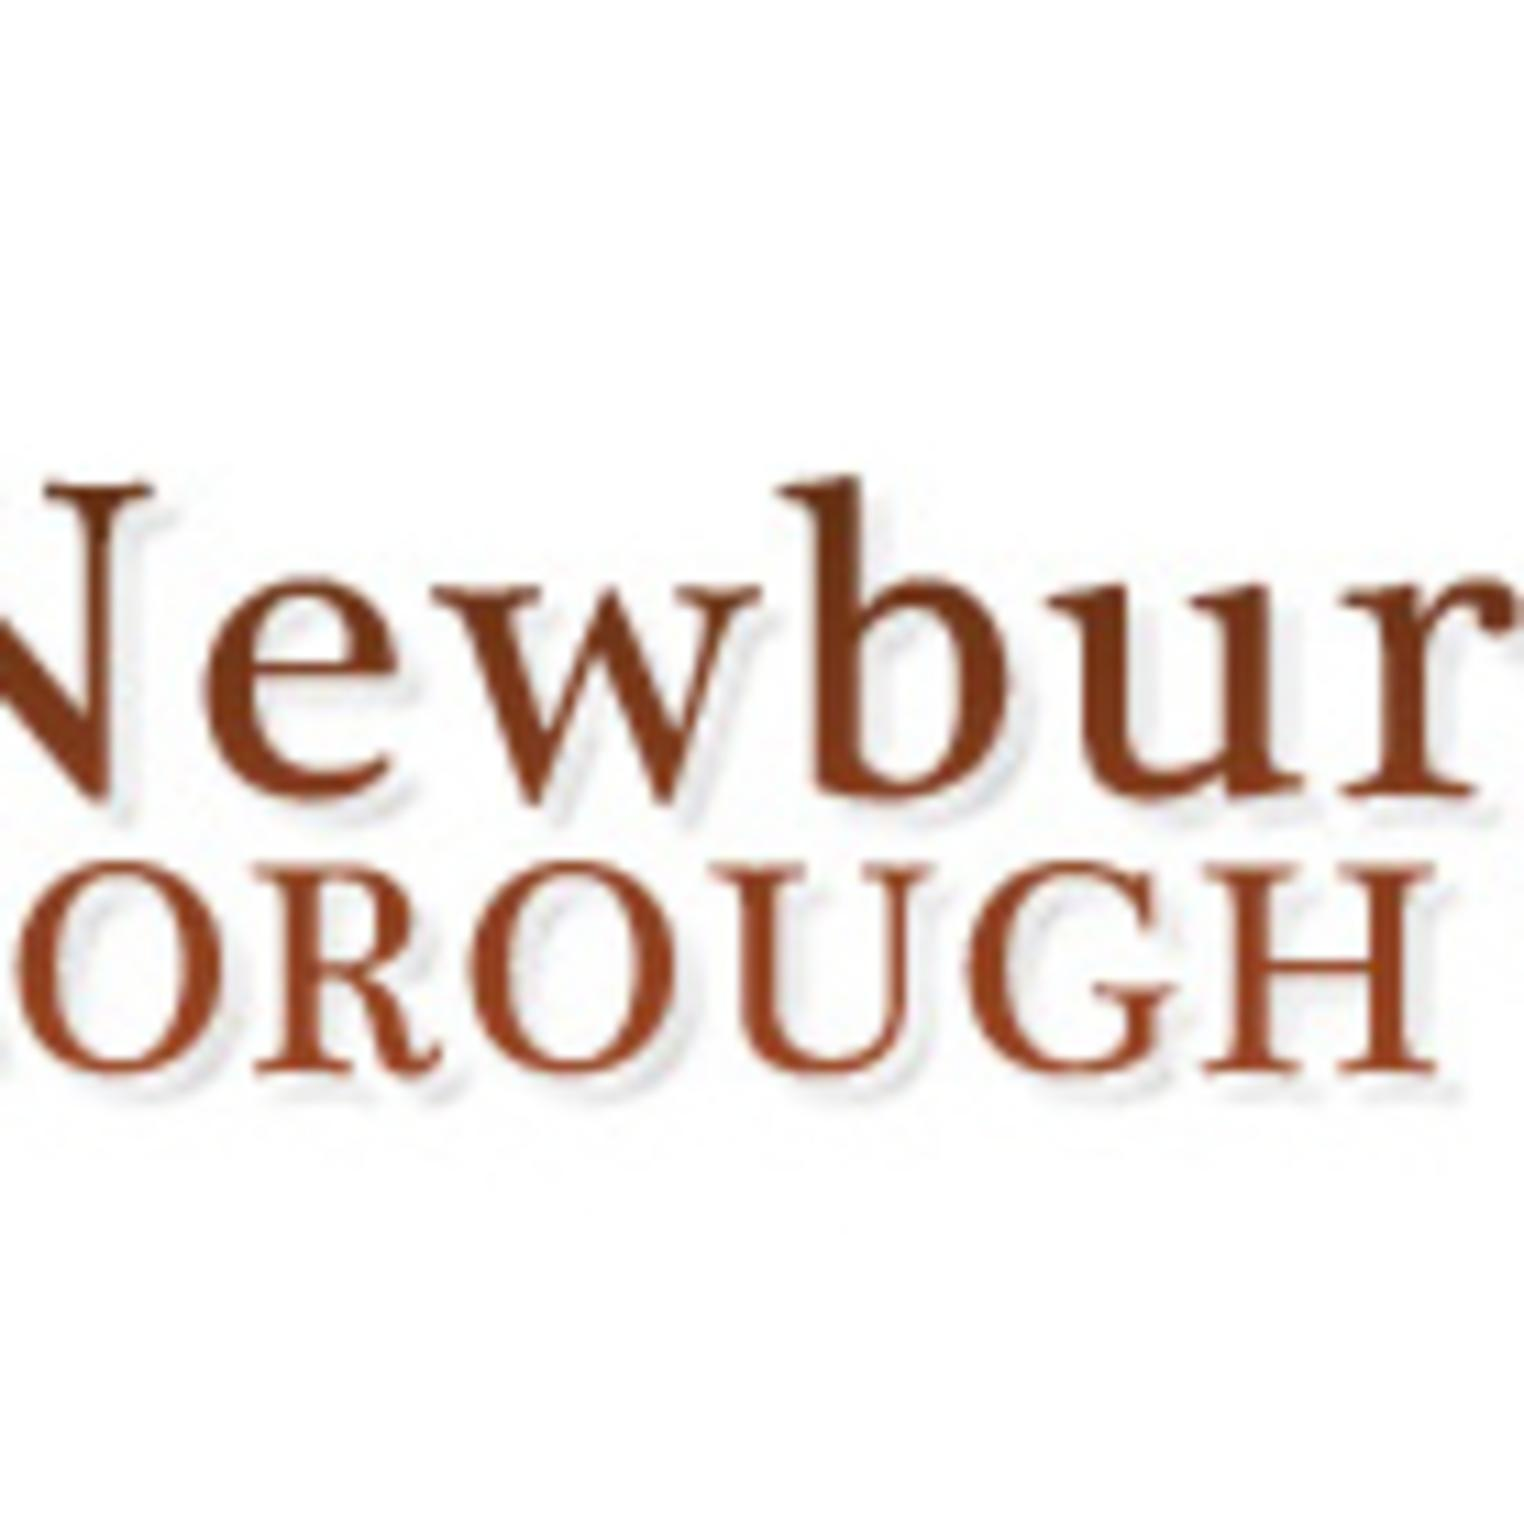 Newburg Borough